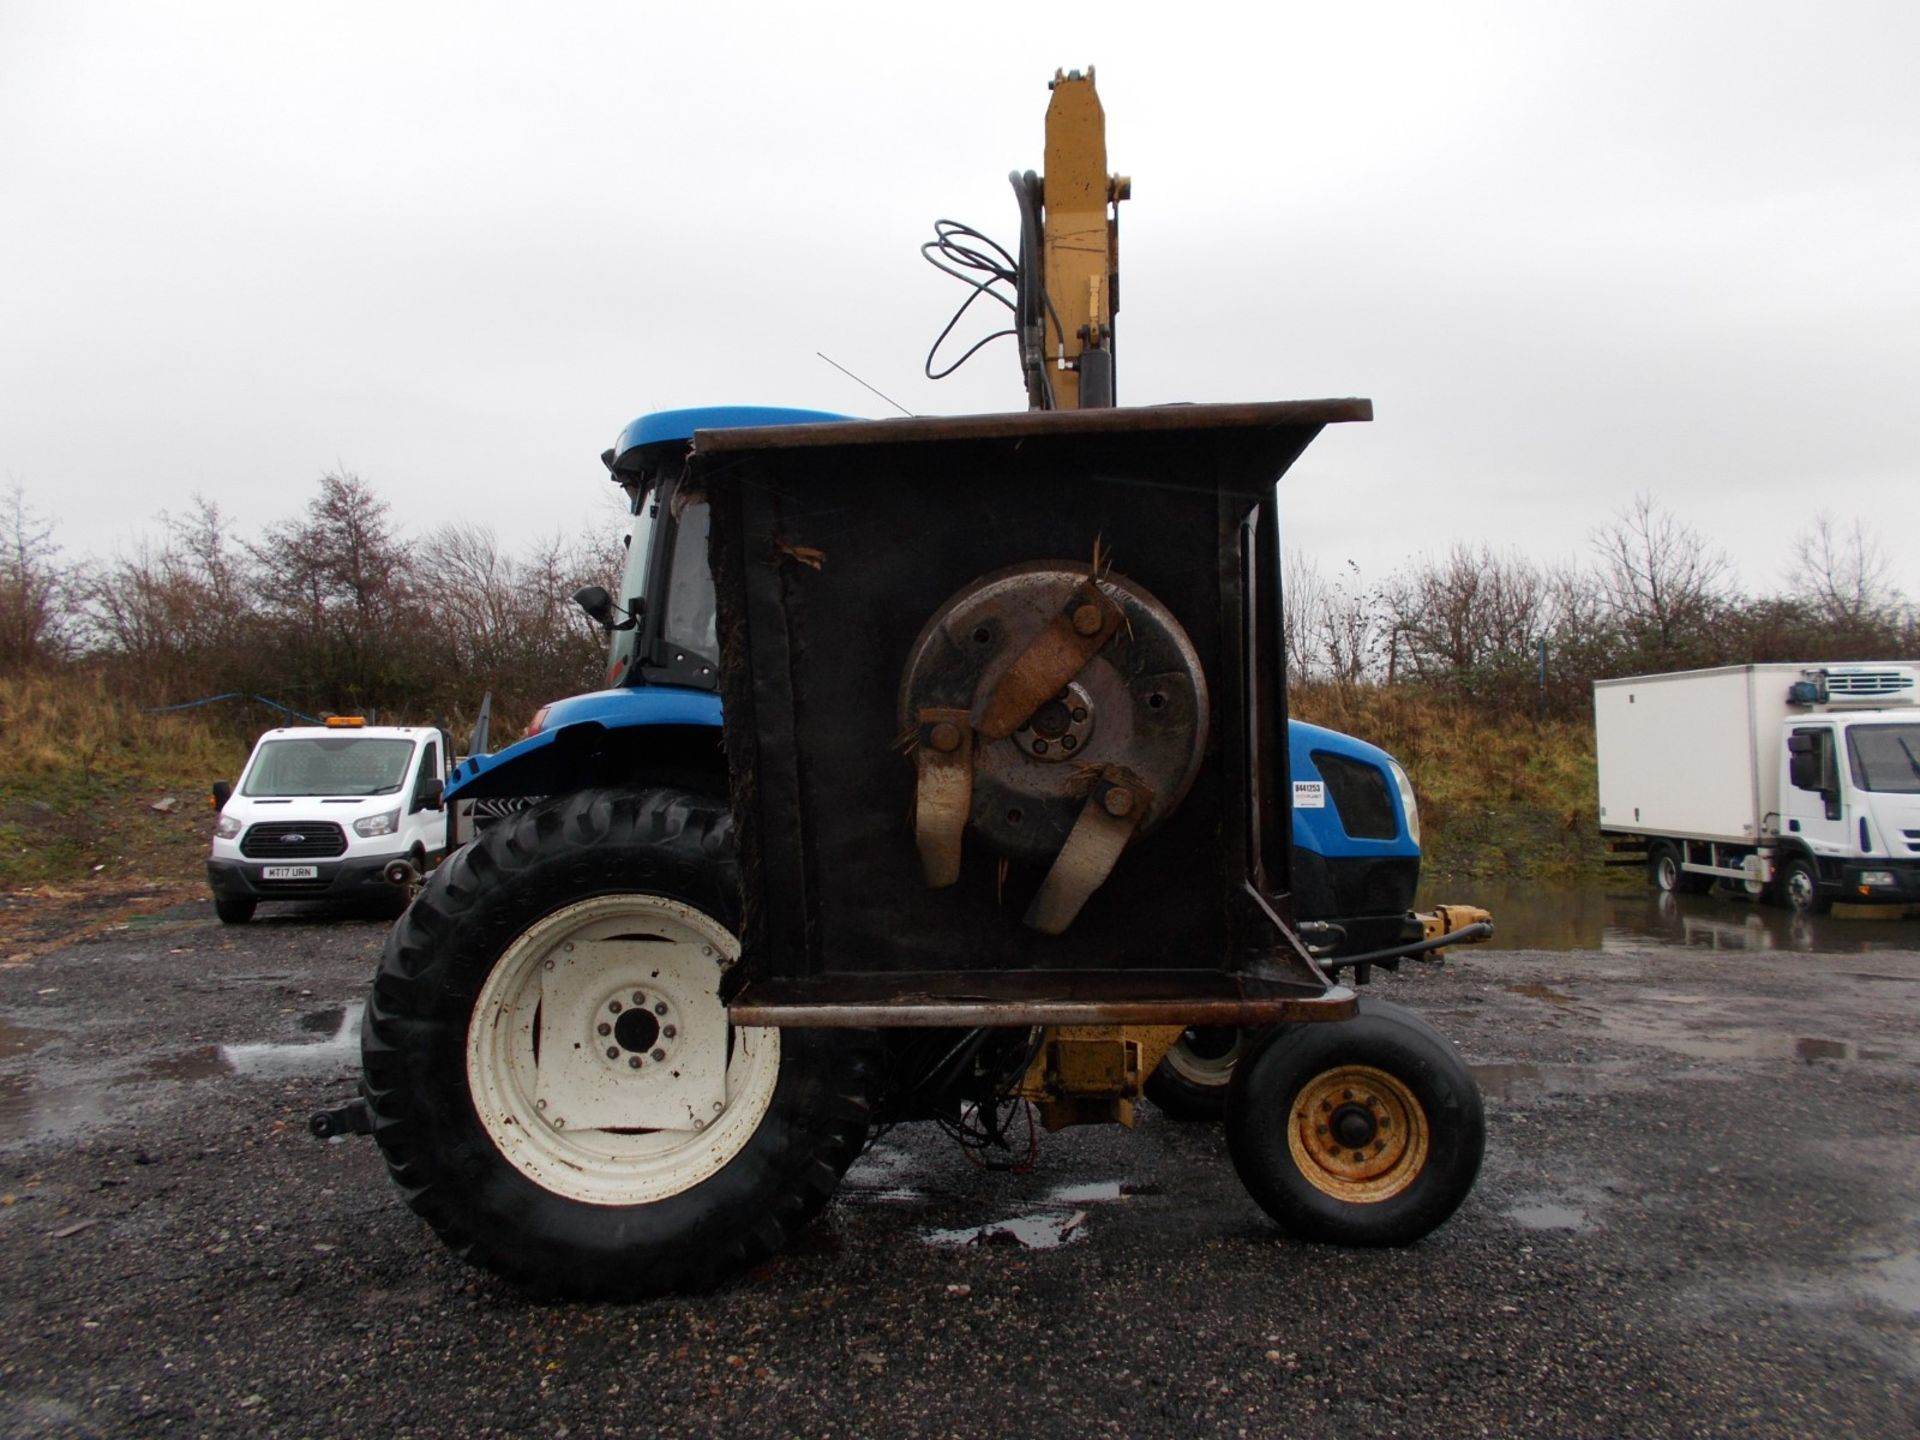 2003 NEW HOLLAND TS100A TRACTOR WITH MOWER ATTACHMENT, 4.5 LITRE 100HP TURBO DIESEL *PLUS VAT* - Image 12 of 24